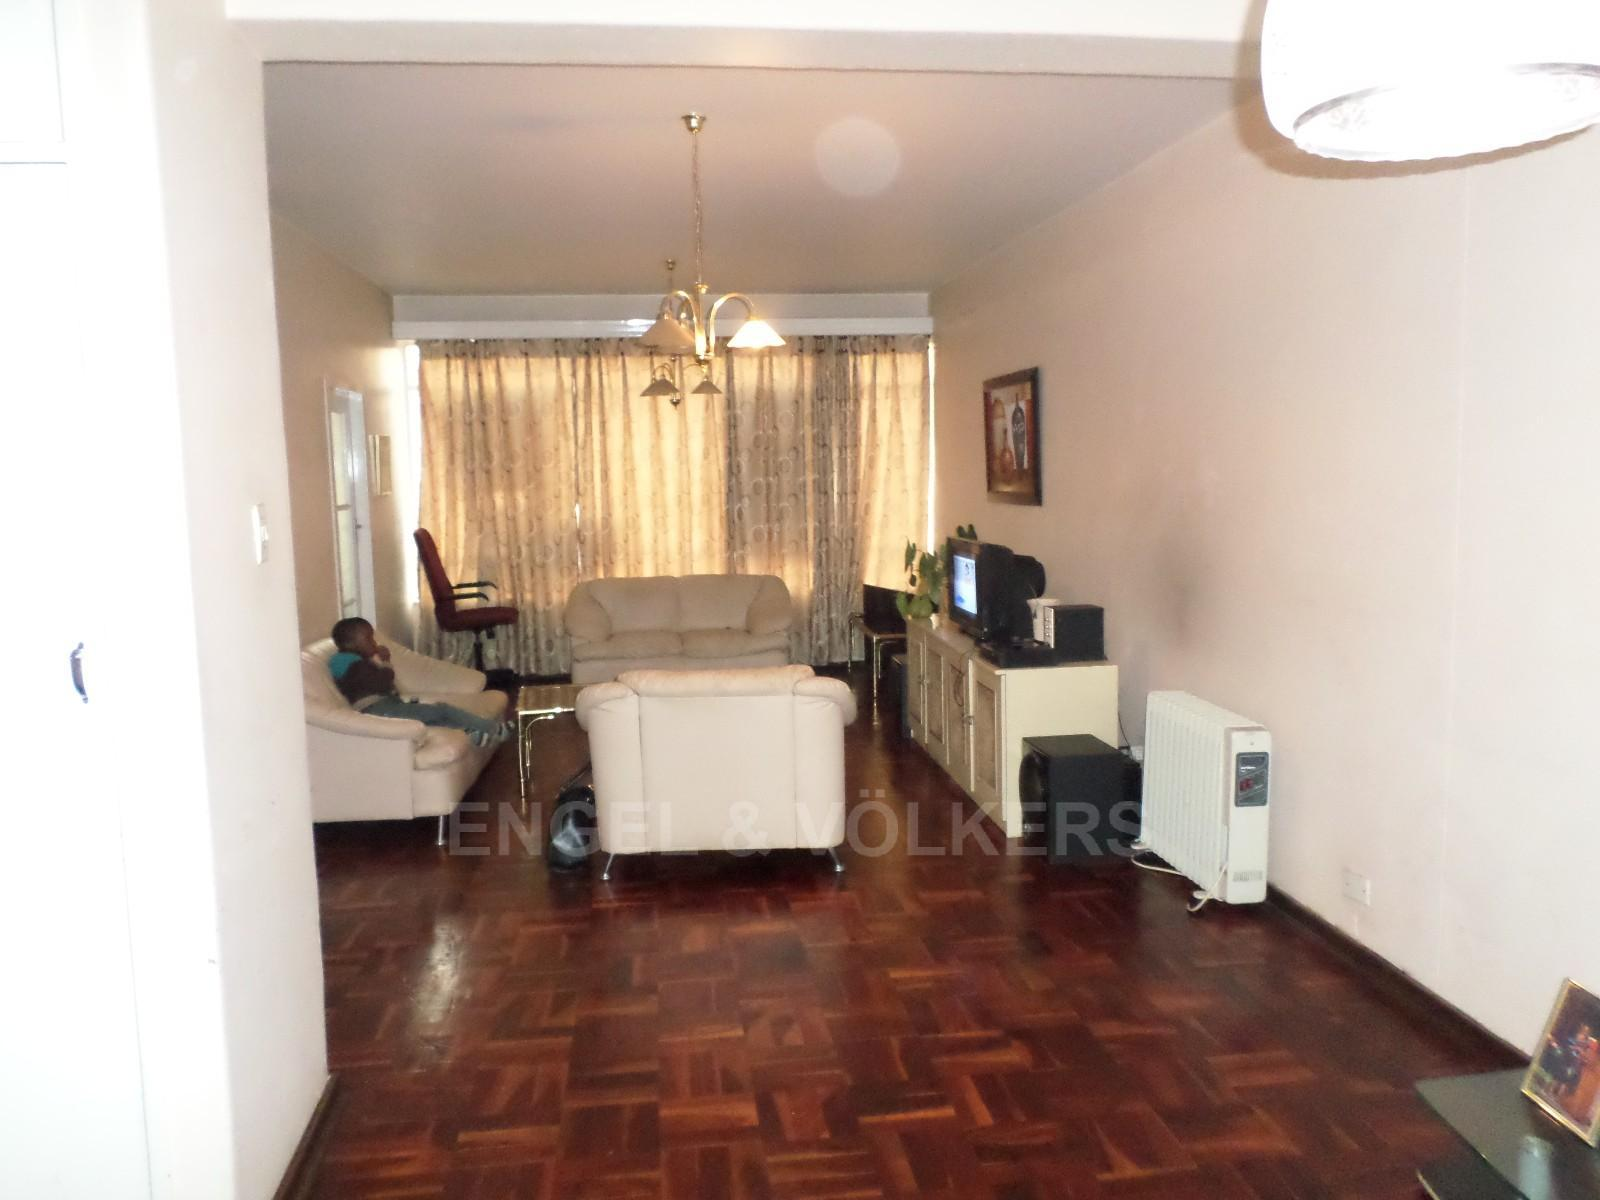 Arcadia property for sale. Ref No: 13341885. Picture no 4